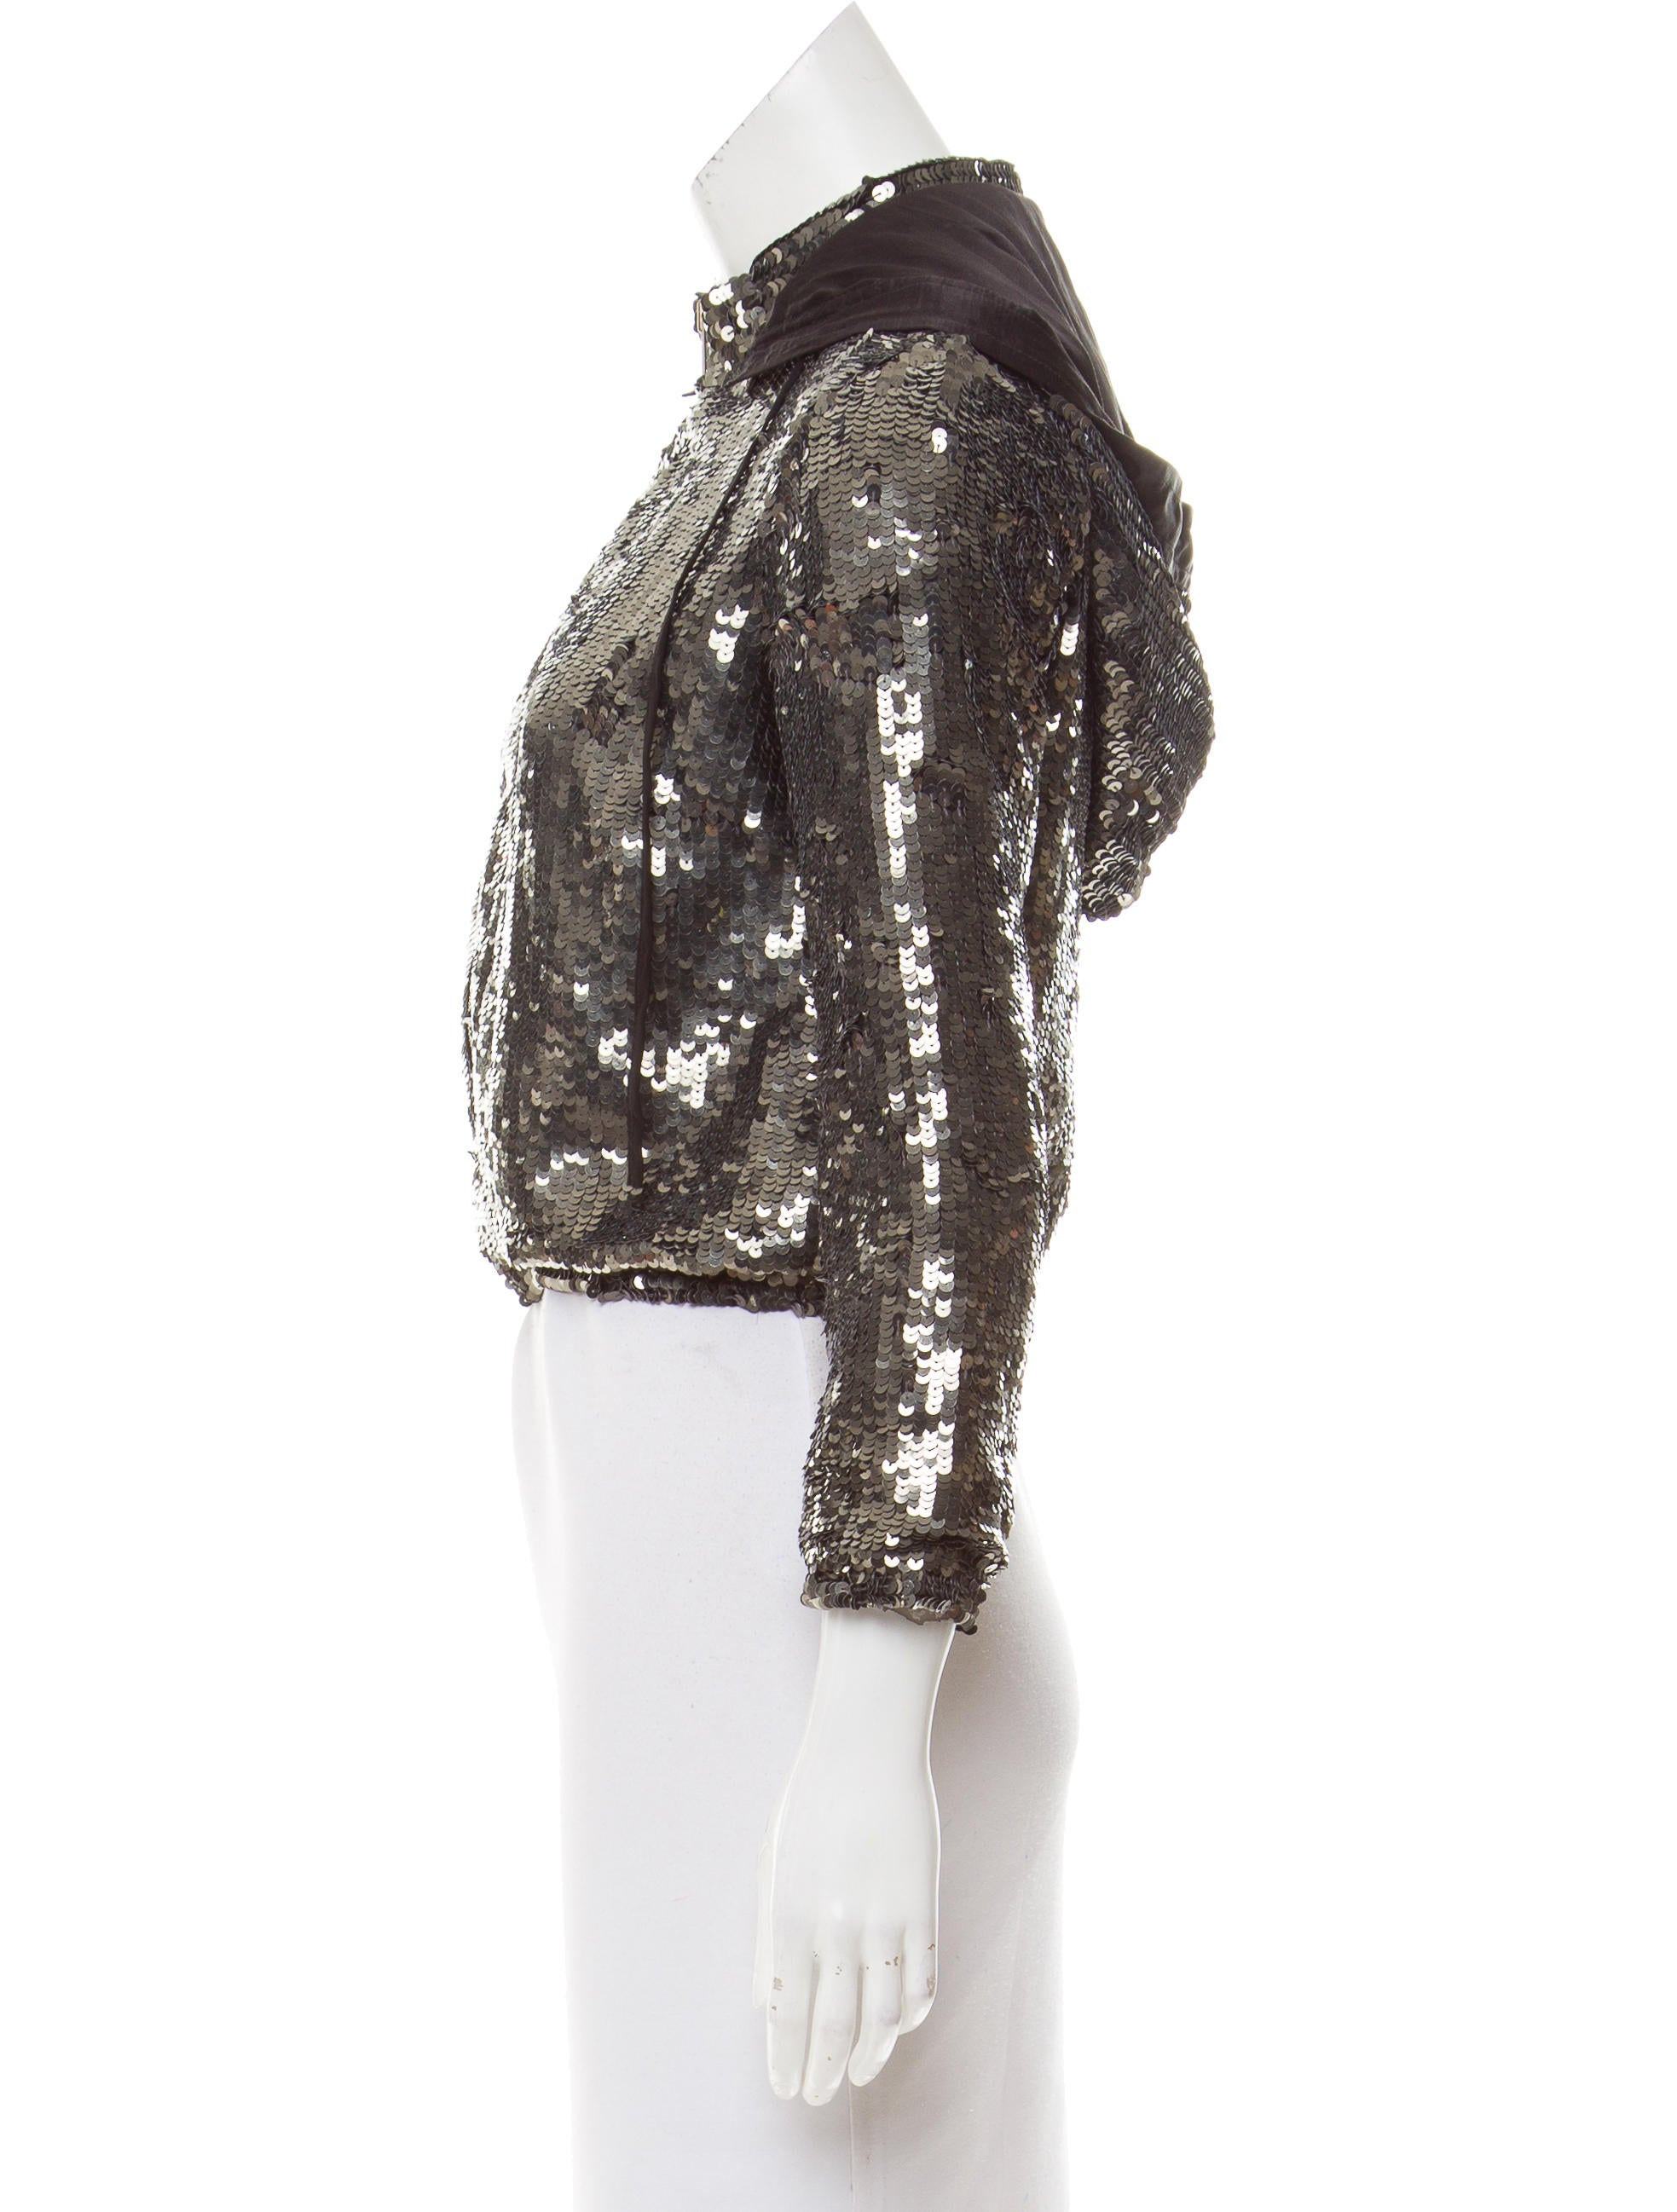 Sexy black long sleeve jacket with sequined hood, front zipper and sequin pockets with satin details. (Shorts not included.).